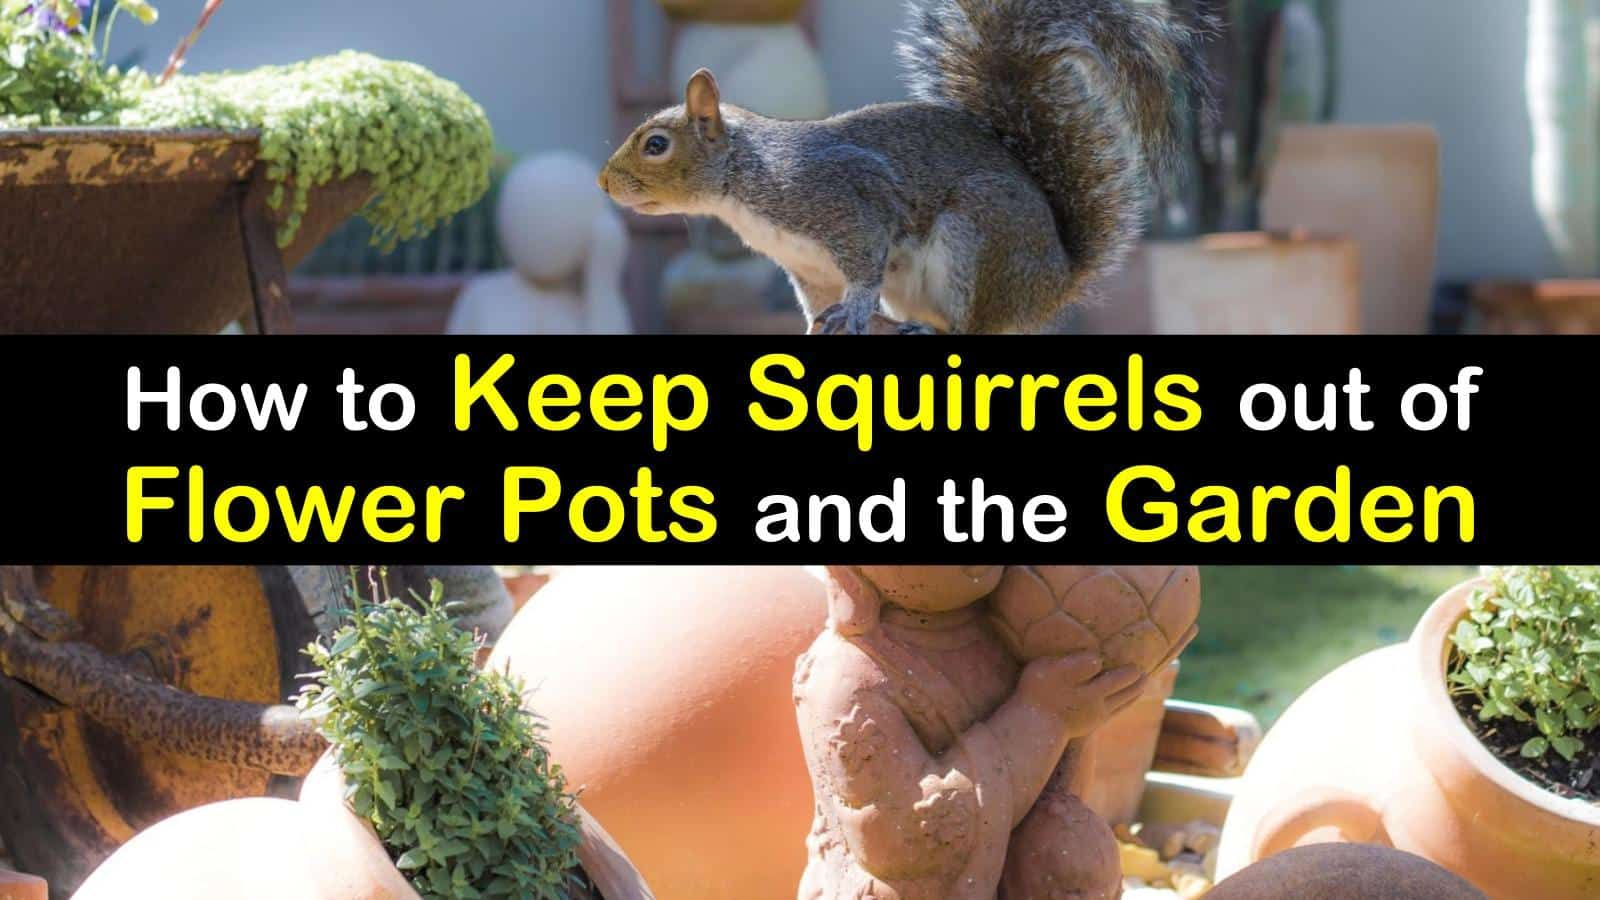 How to Keep Squirrels out of Flower Pots and the Garden